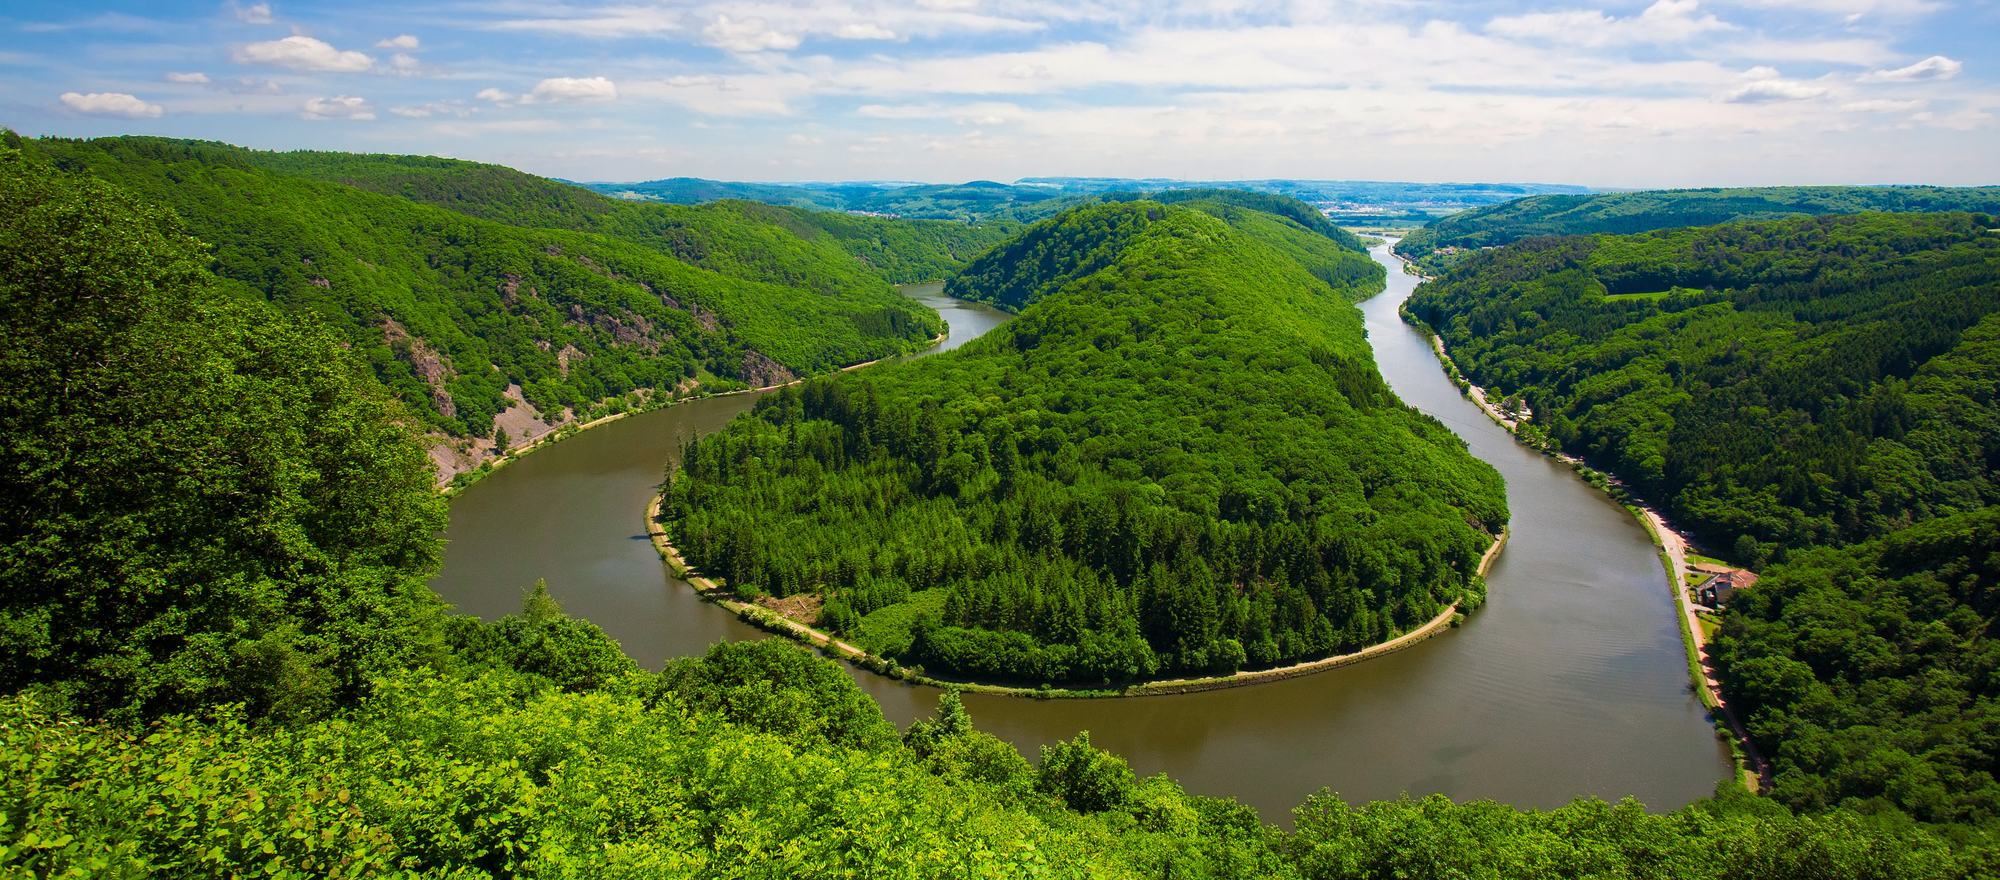 Saar loop from the viewpoint cloef in the Saarland